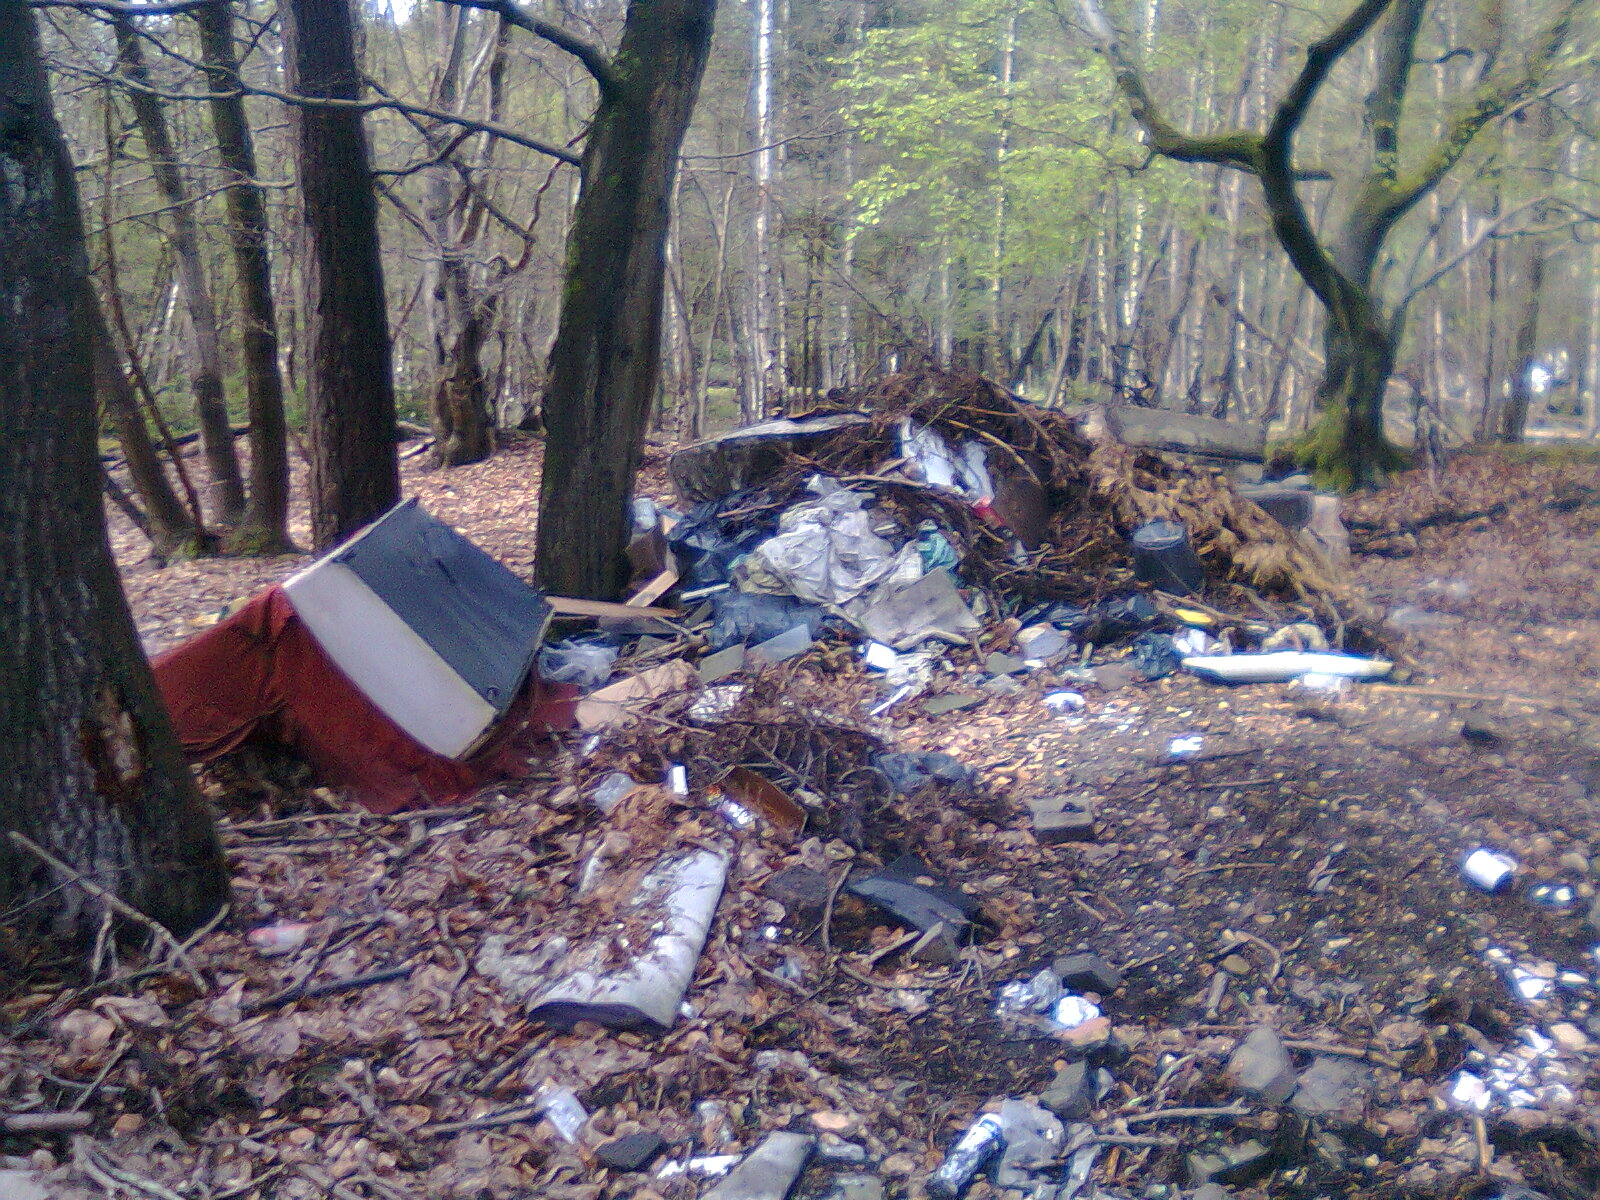 Fly tipping collection & removal service, London, Oxford, Chichester, from RJS Waste Management UK Ltd